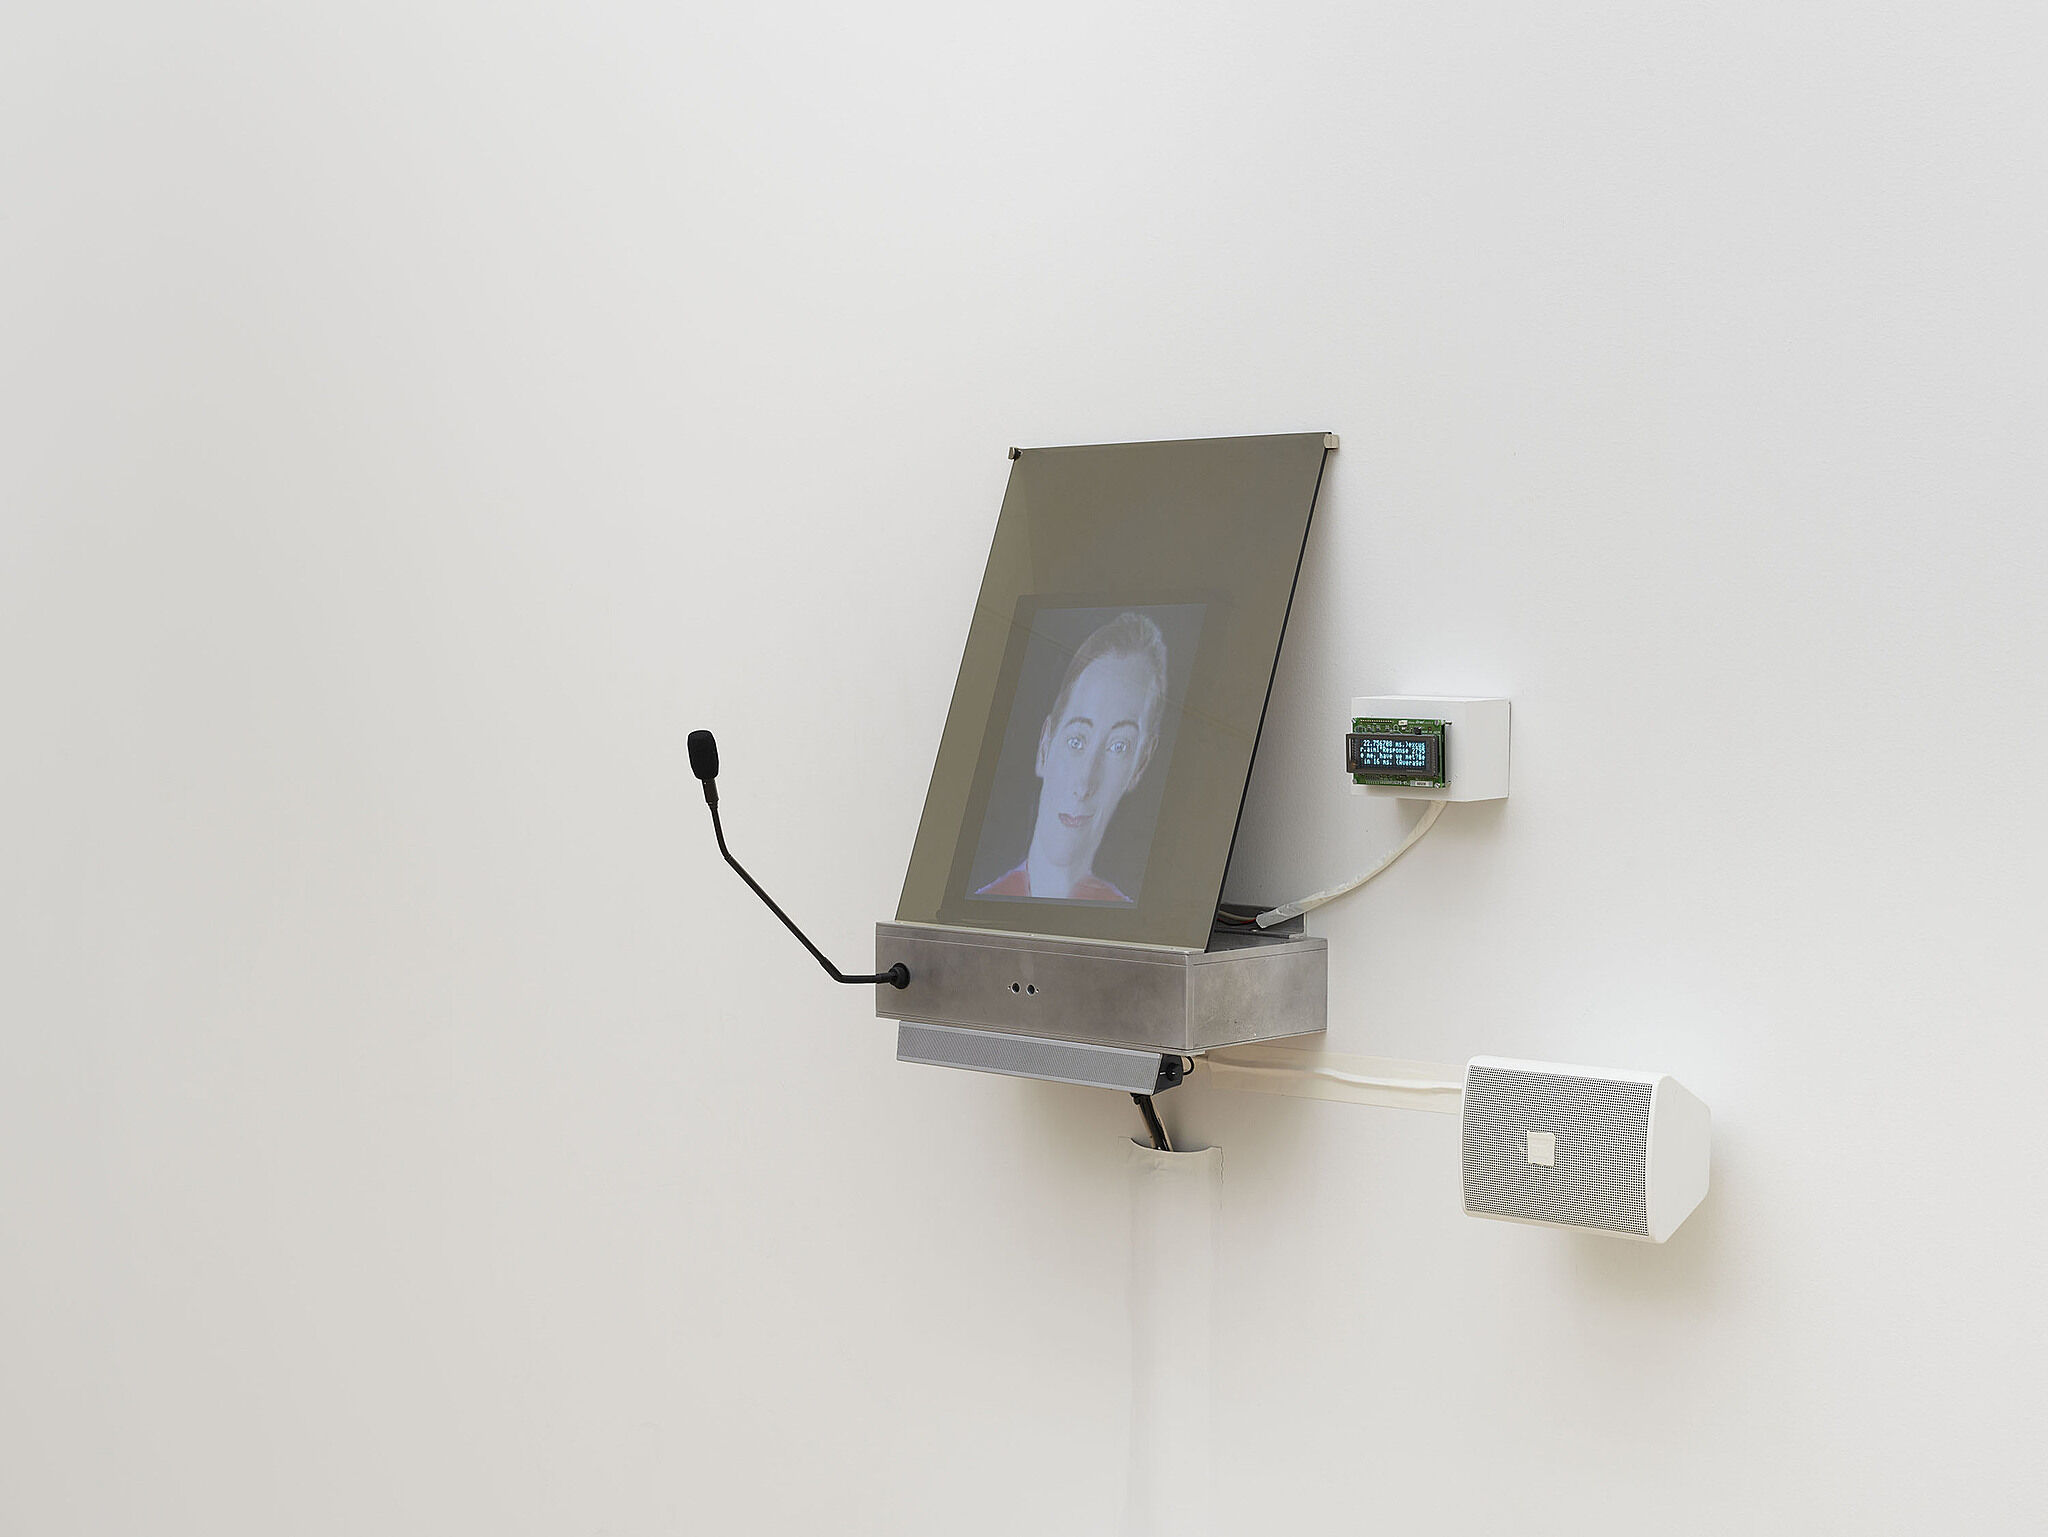 A small video screen on the wall projecting a person's face.